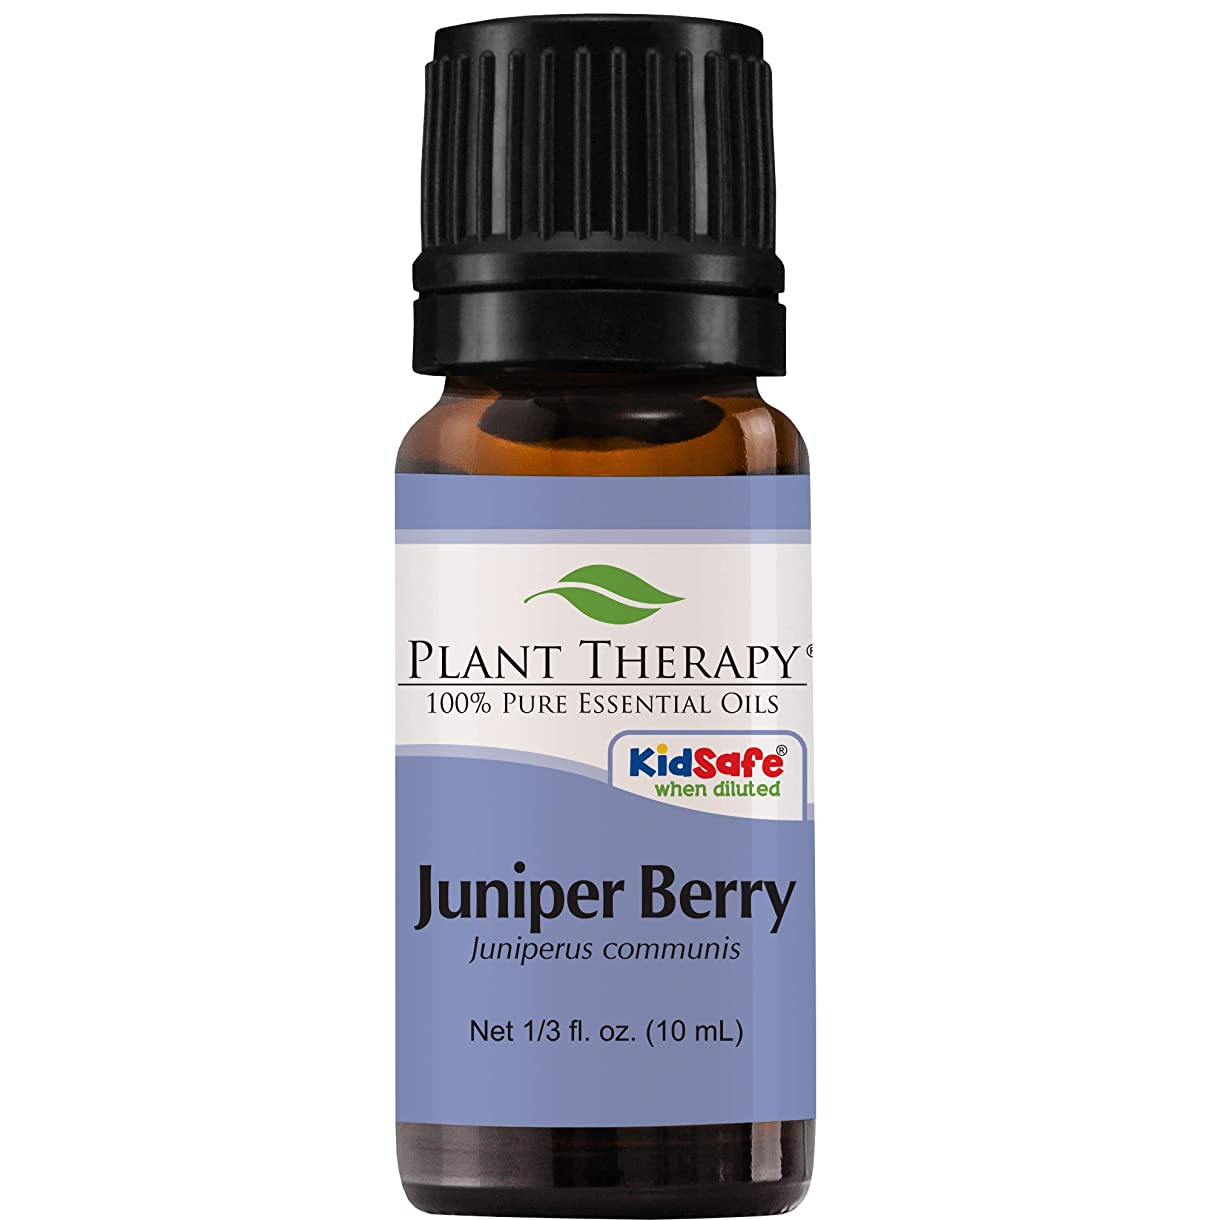 ケニアキリスト教先駆者Plant Therapy Juniper Berry Essential Oil. 100% Pure, Undiluted, Therapeutic Grade. 10 ml (1/3 oz).